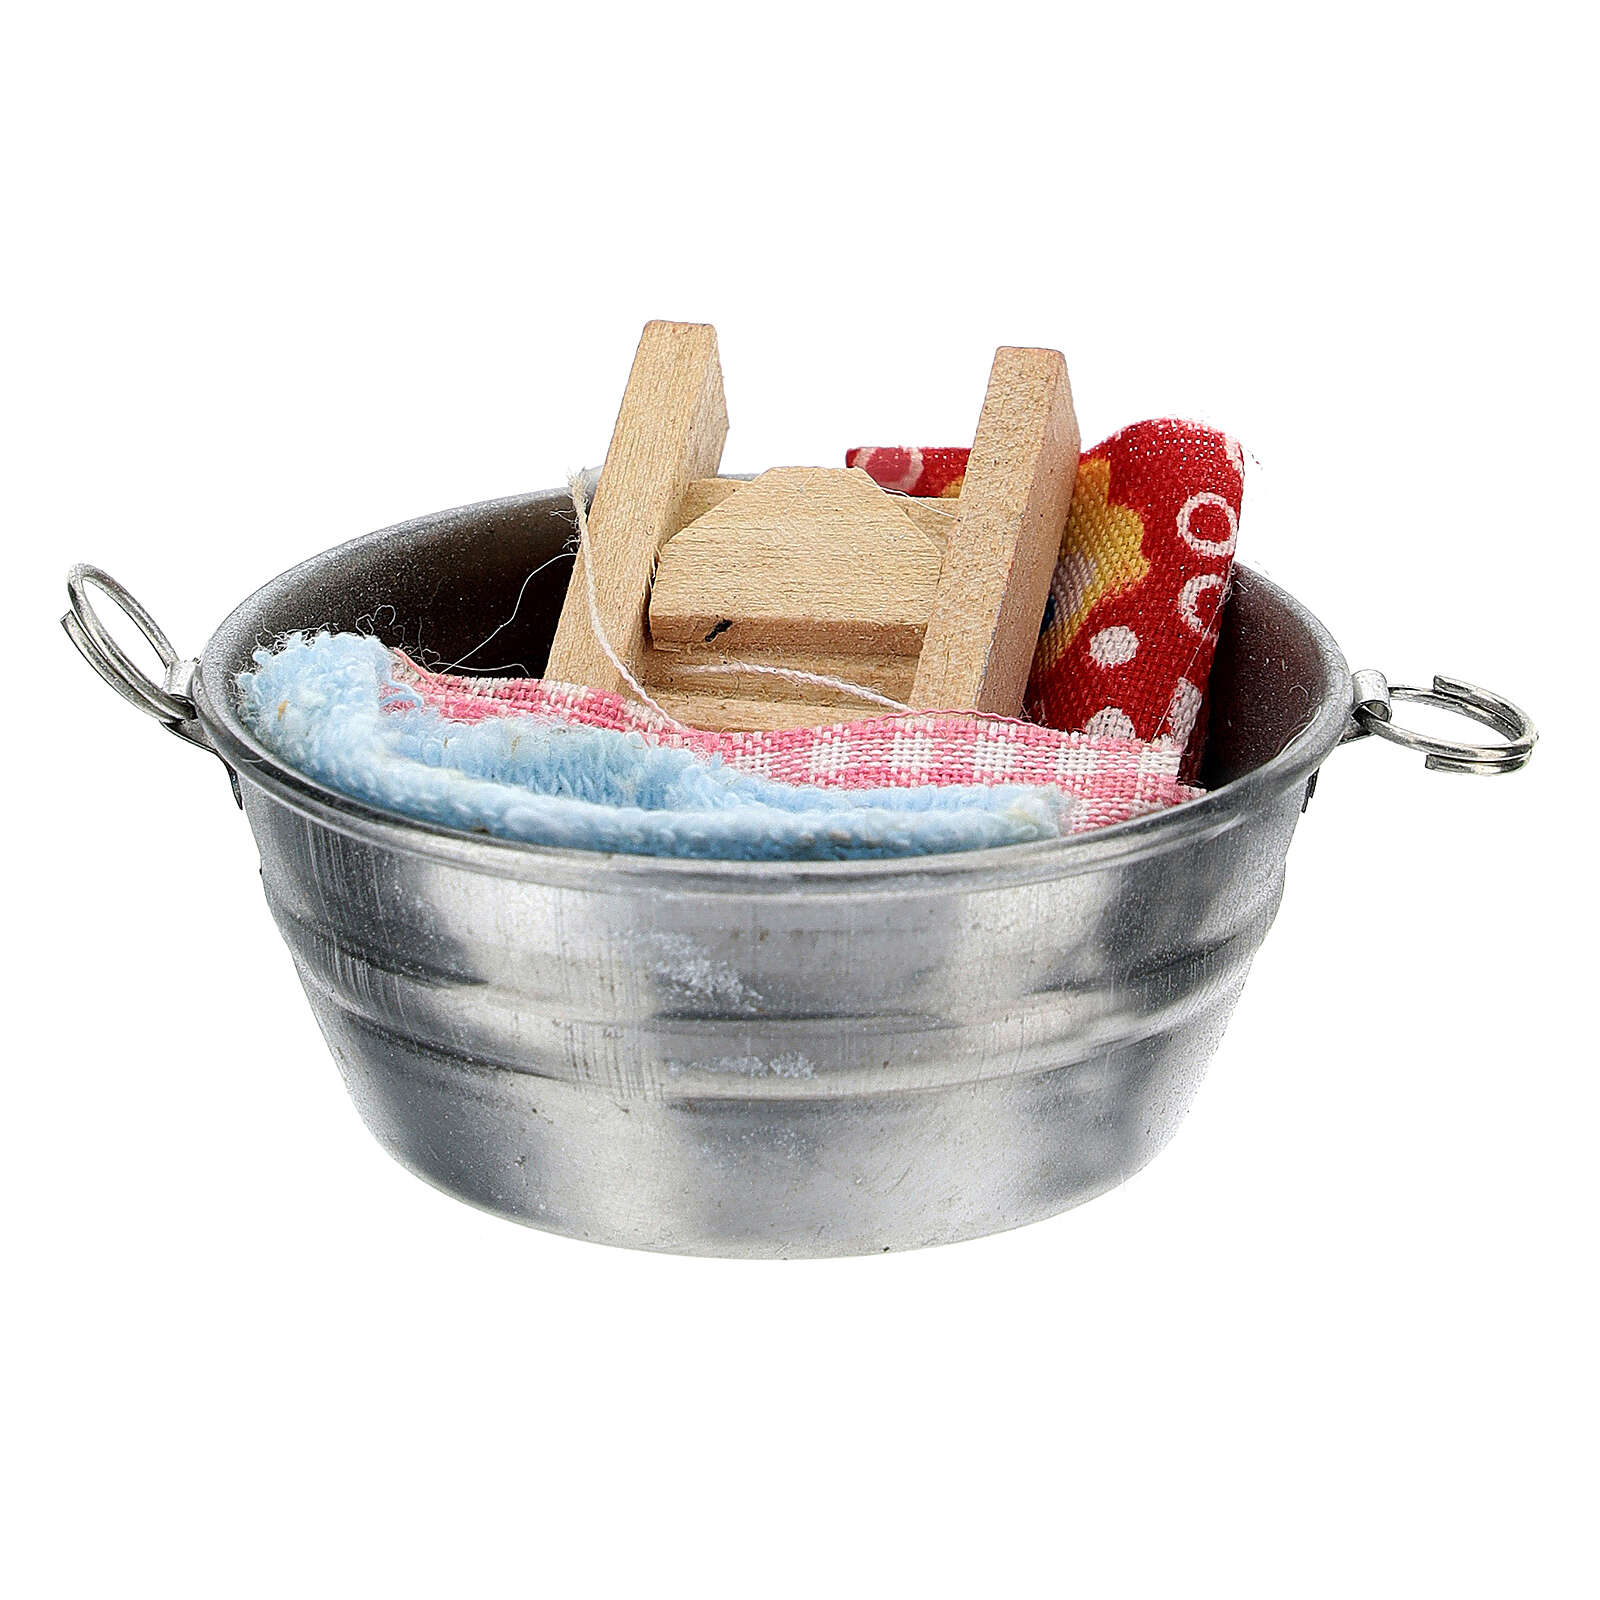 Wood tub with clothes for Nativity Scene with 6-8 cm figurines 4